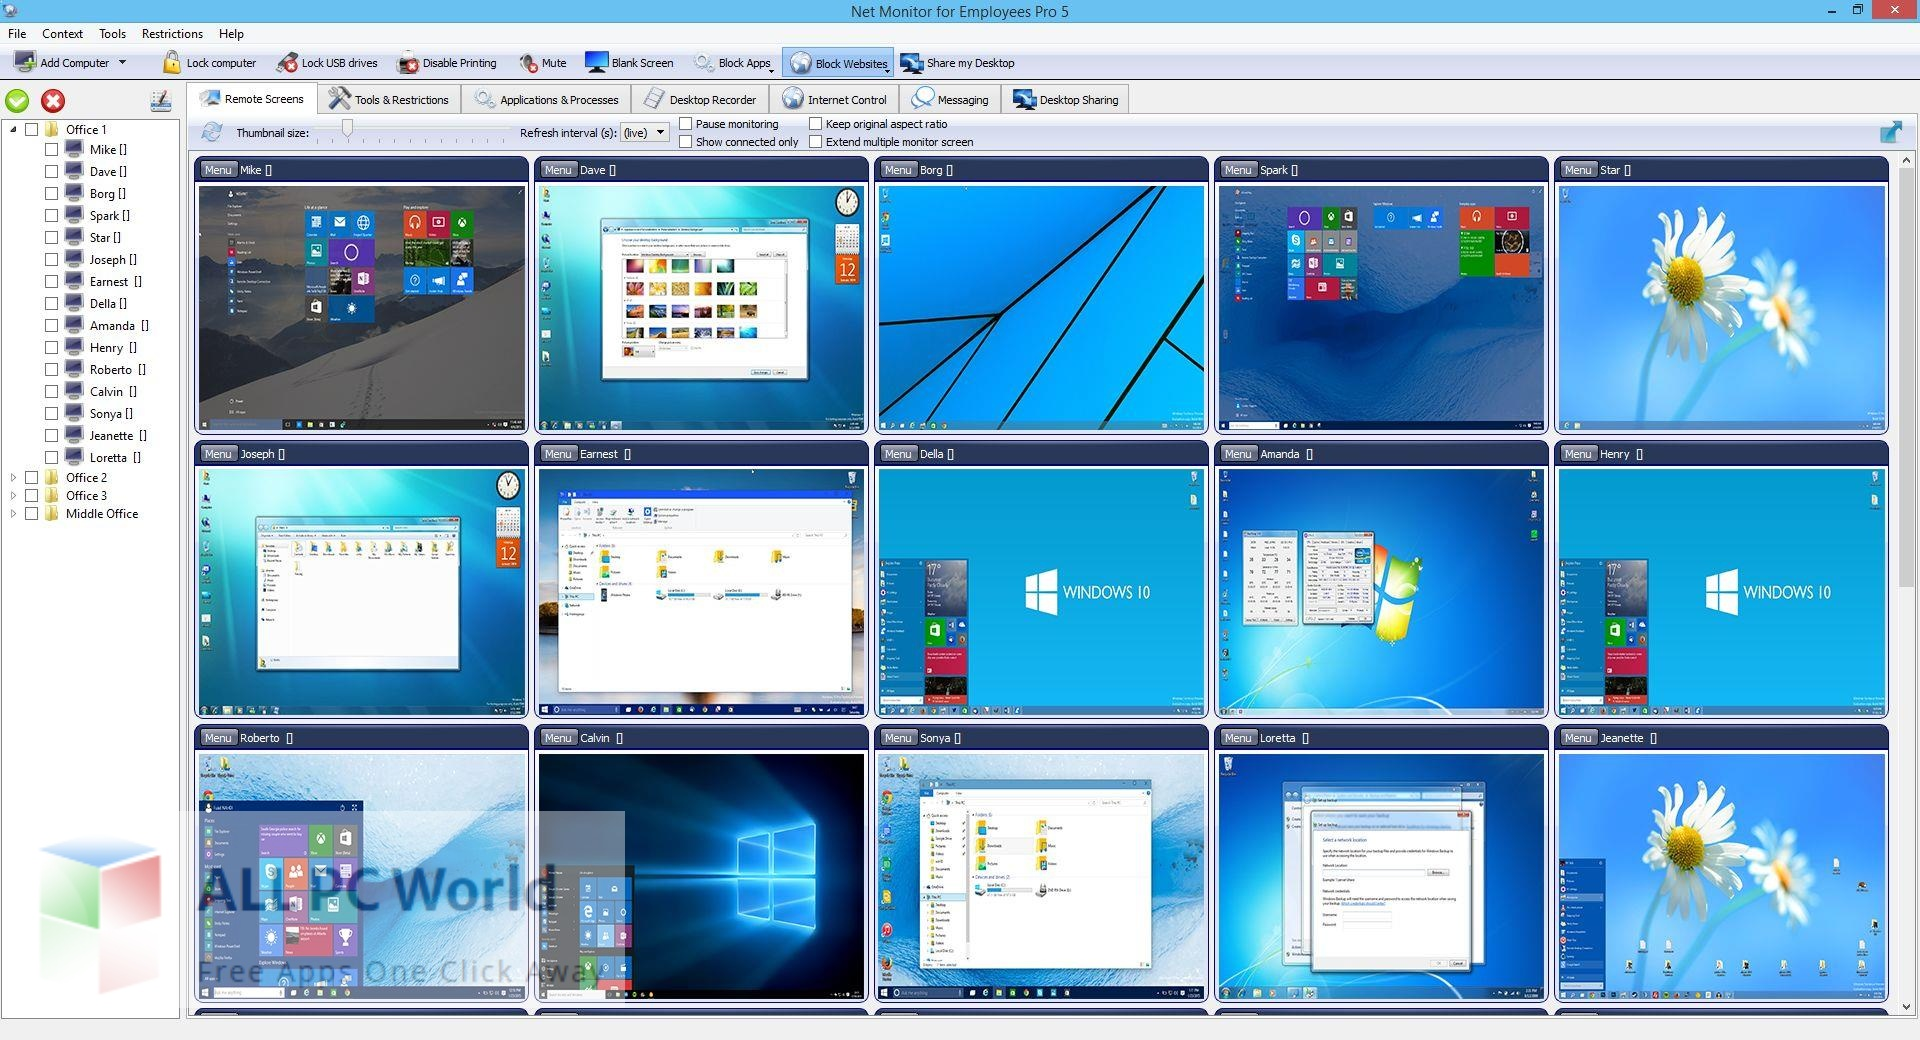 Net Monitor For Employees Pro 5 Free Download